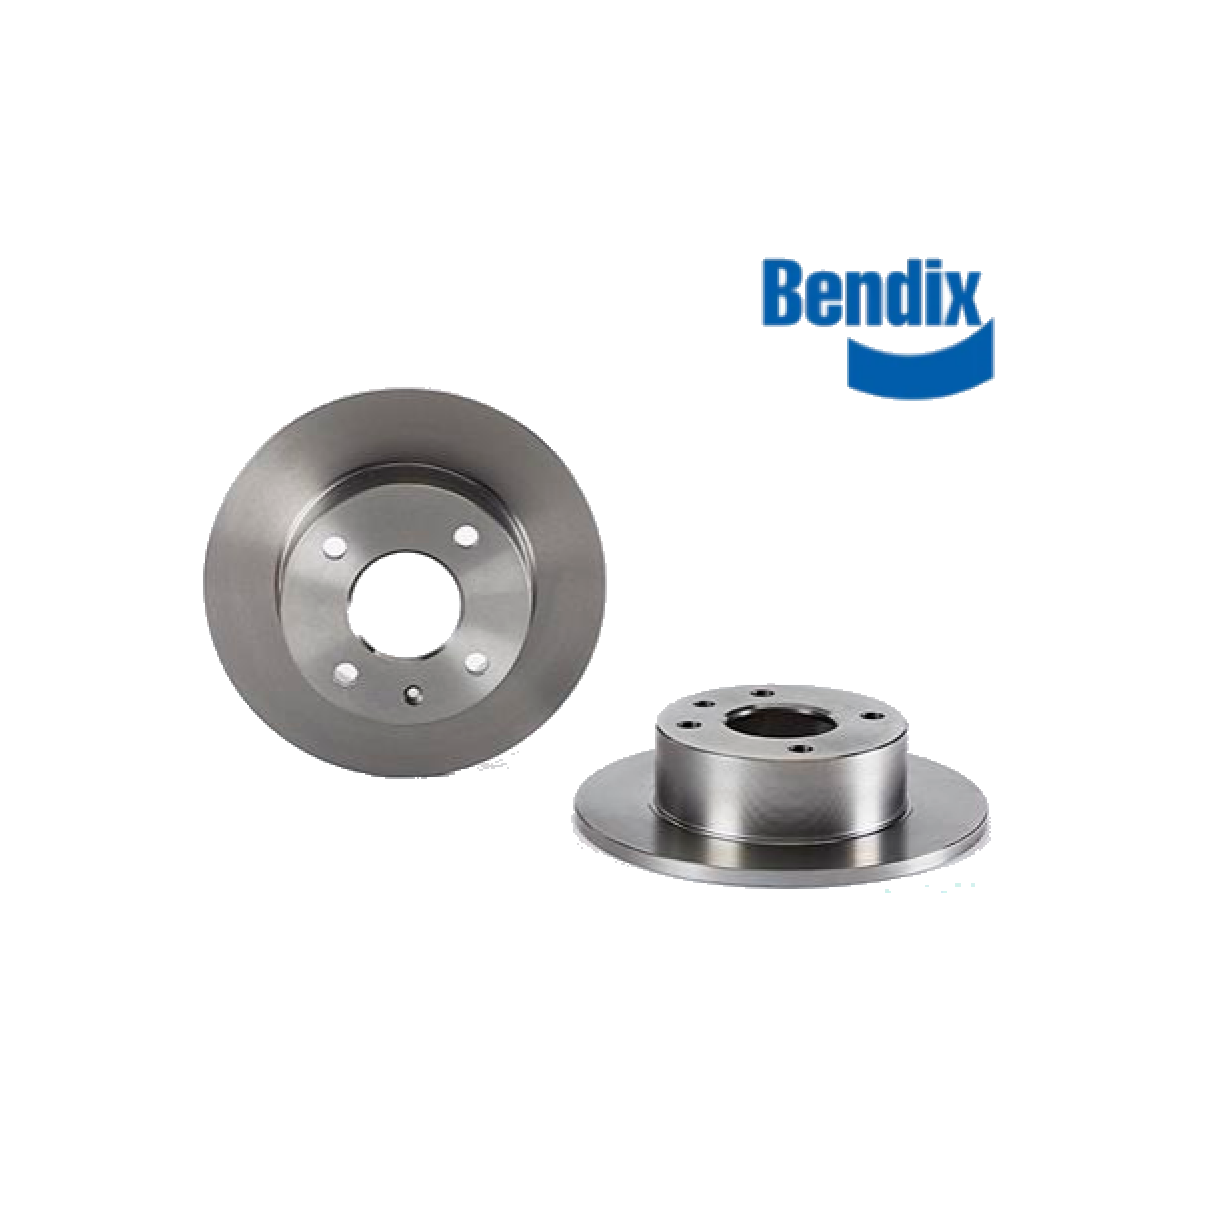 PAIR OF FRONT BRAKE DISCS FORD ESCORT - ORION BENDIX FOR 1629475